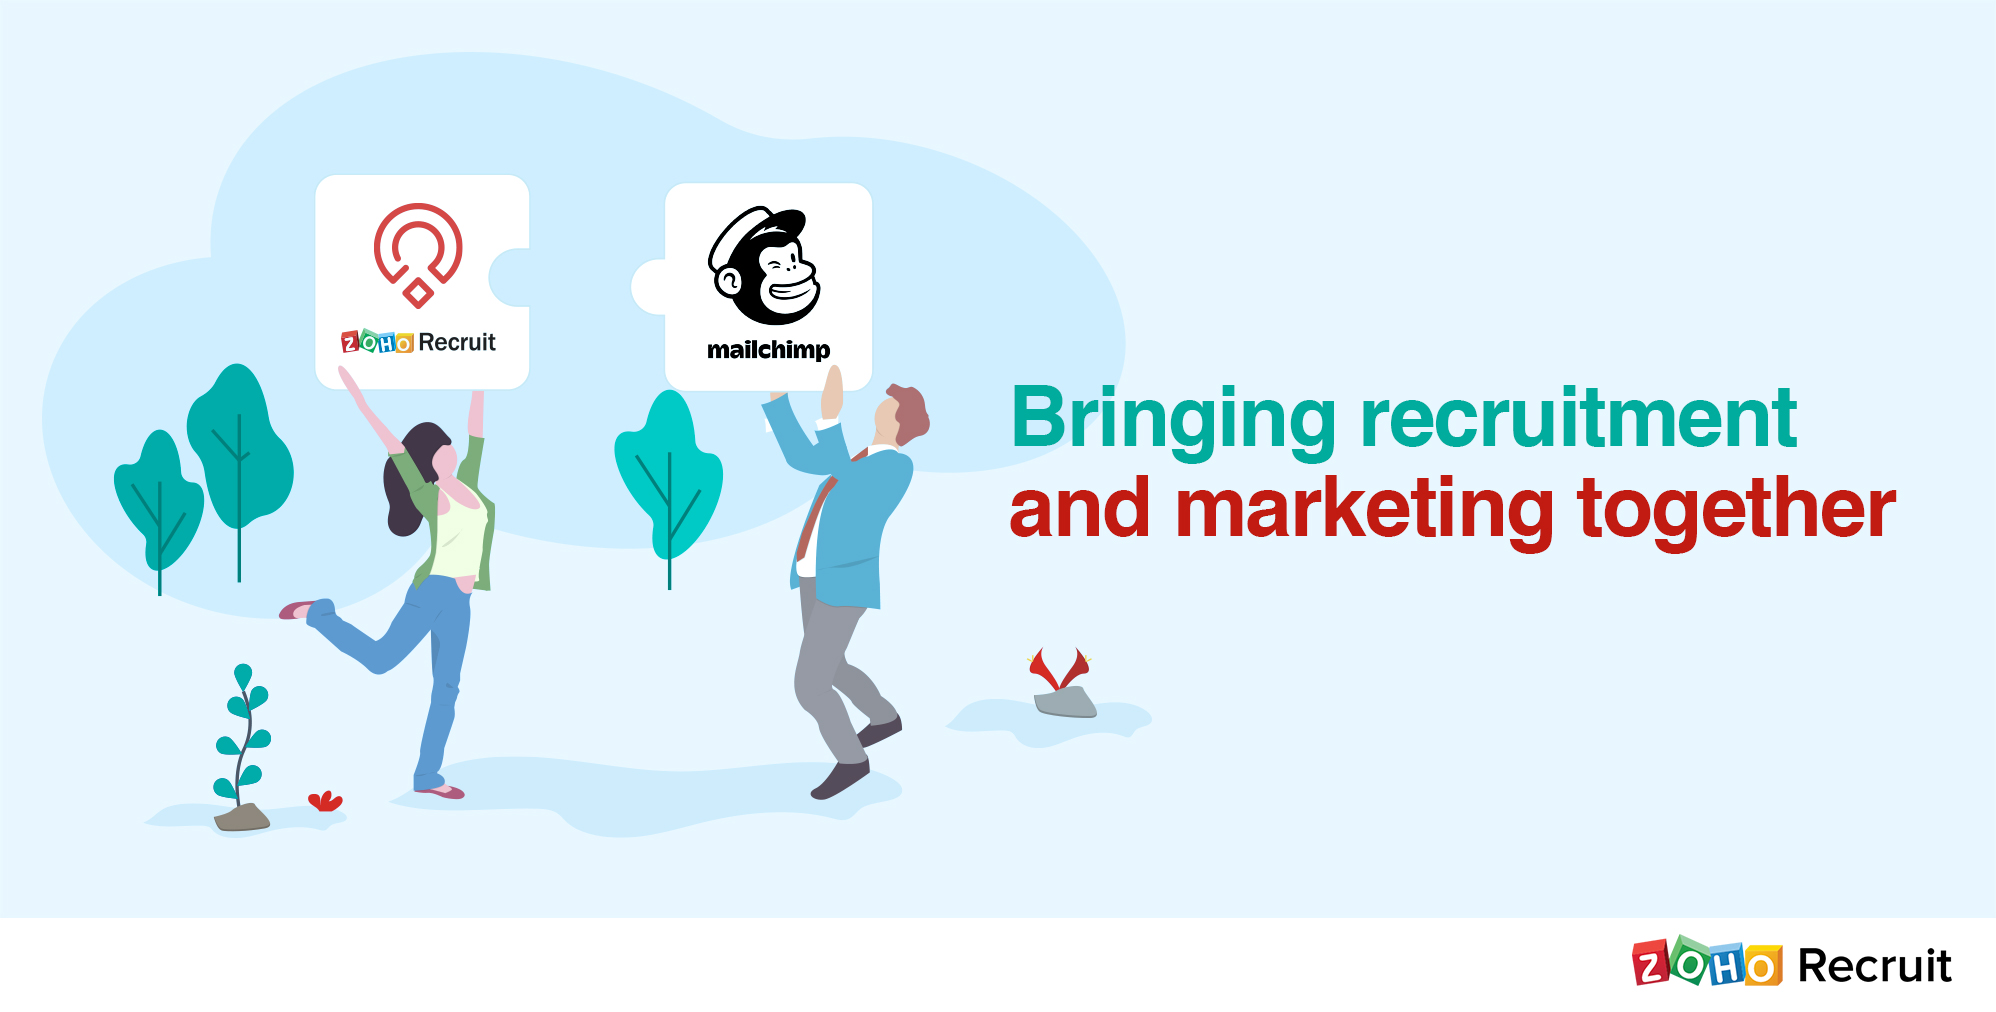 We bring to you the Zoho Recruit – MailChimp integration.